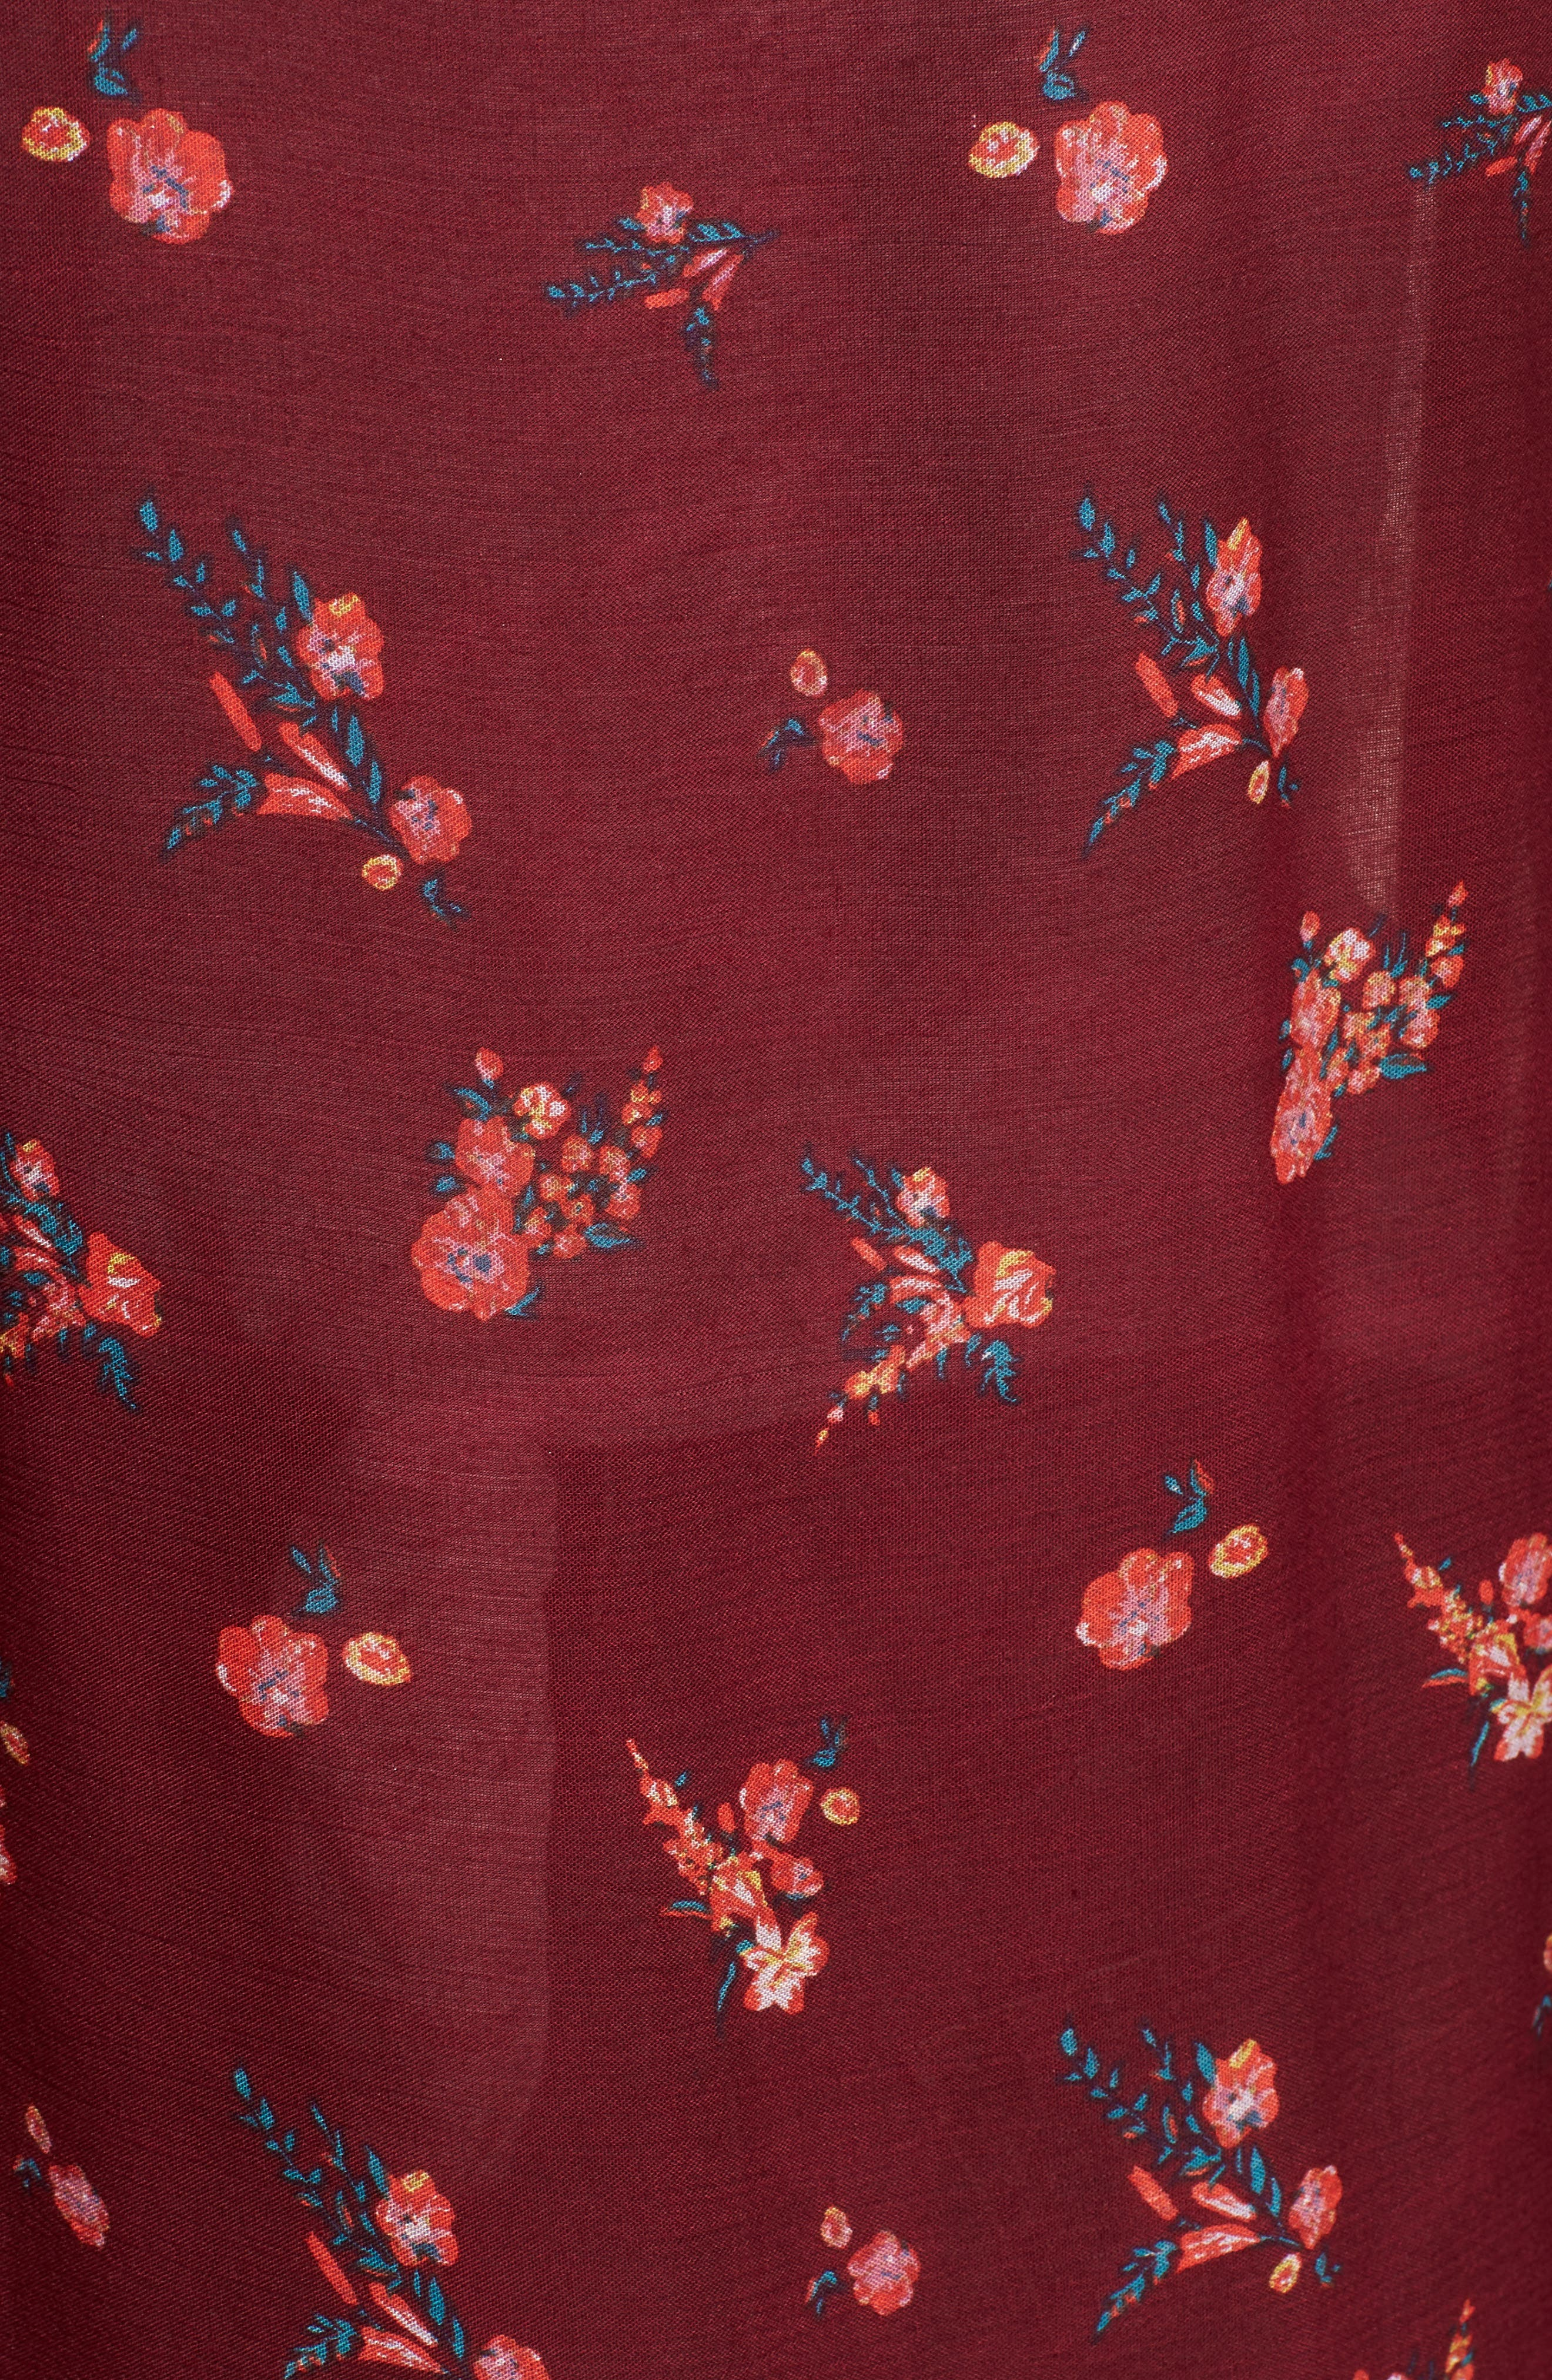 Bali Wrapped In Blooms Shawl,                             Alternate thumbnail 5, color,                             Red Combo